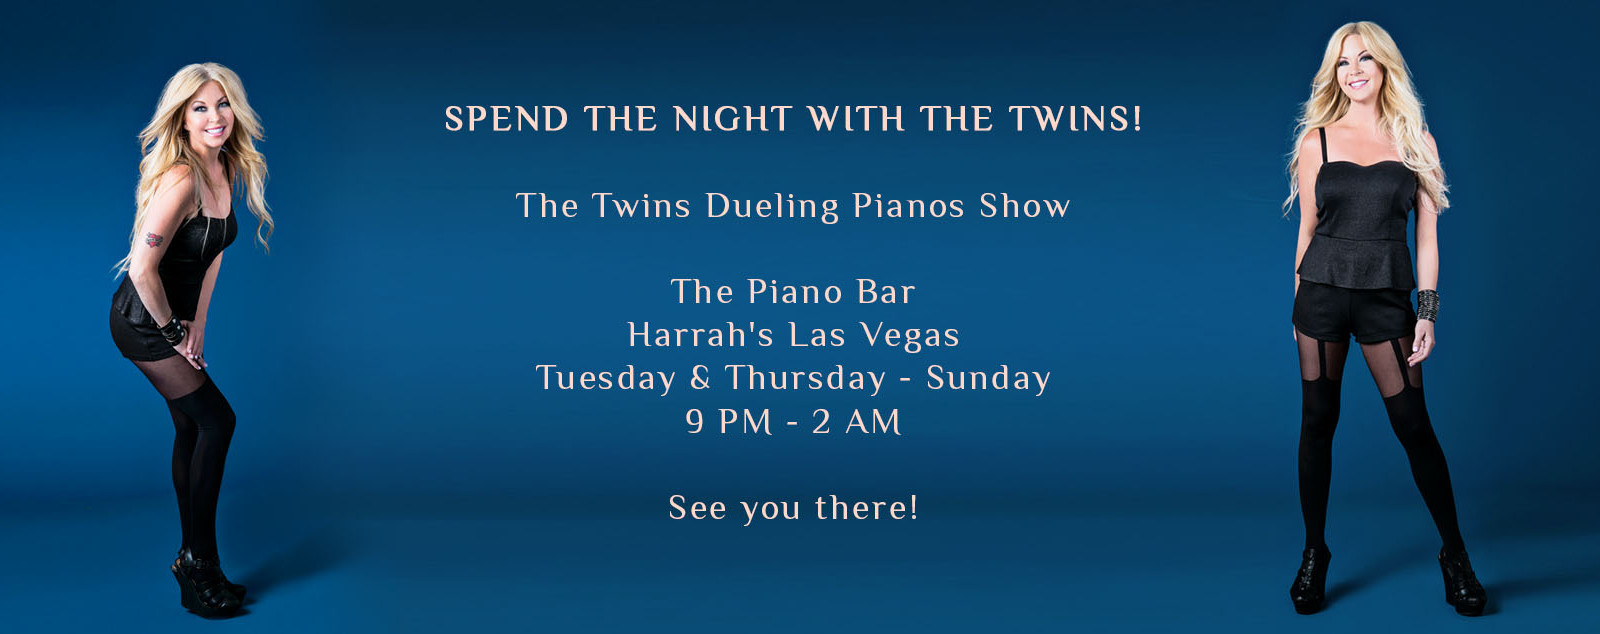 The Schedule for The twins Dueling Pianos